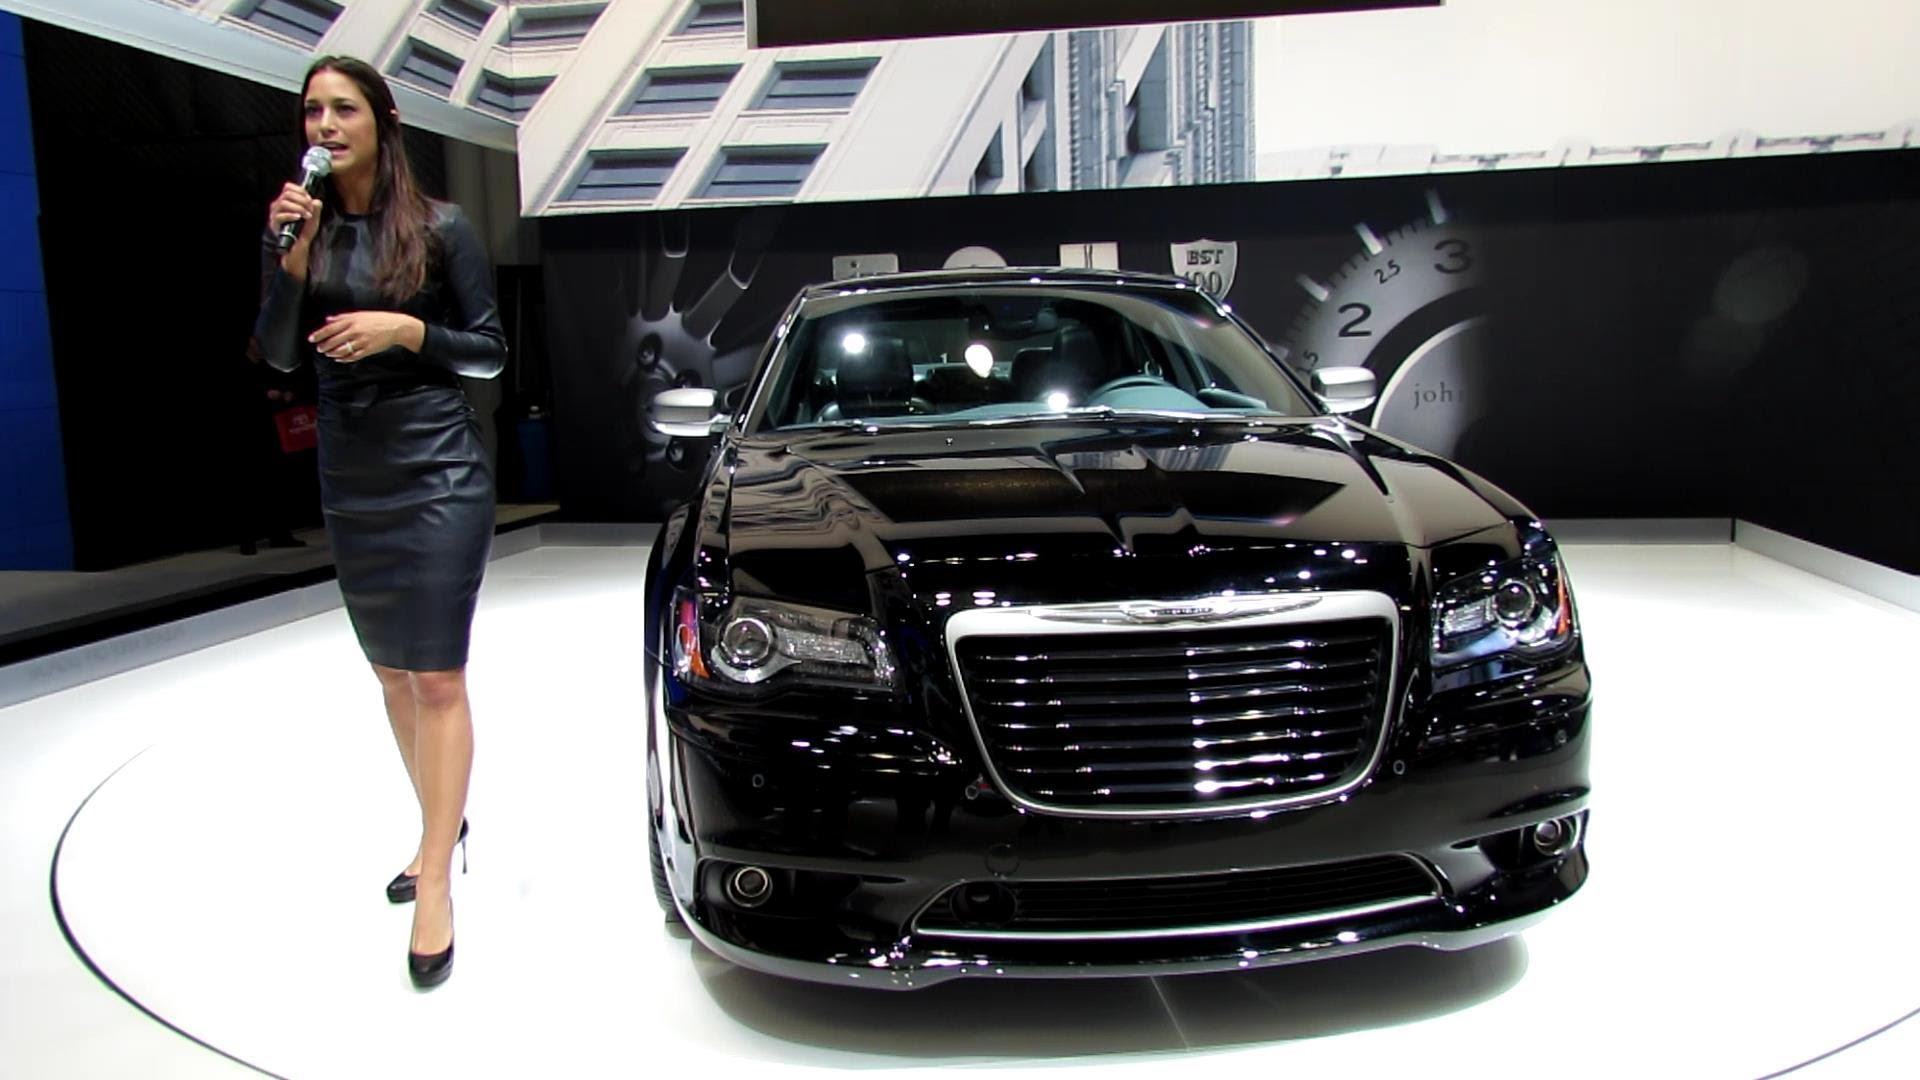 2014 Chrysler 300 #6